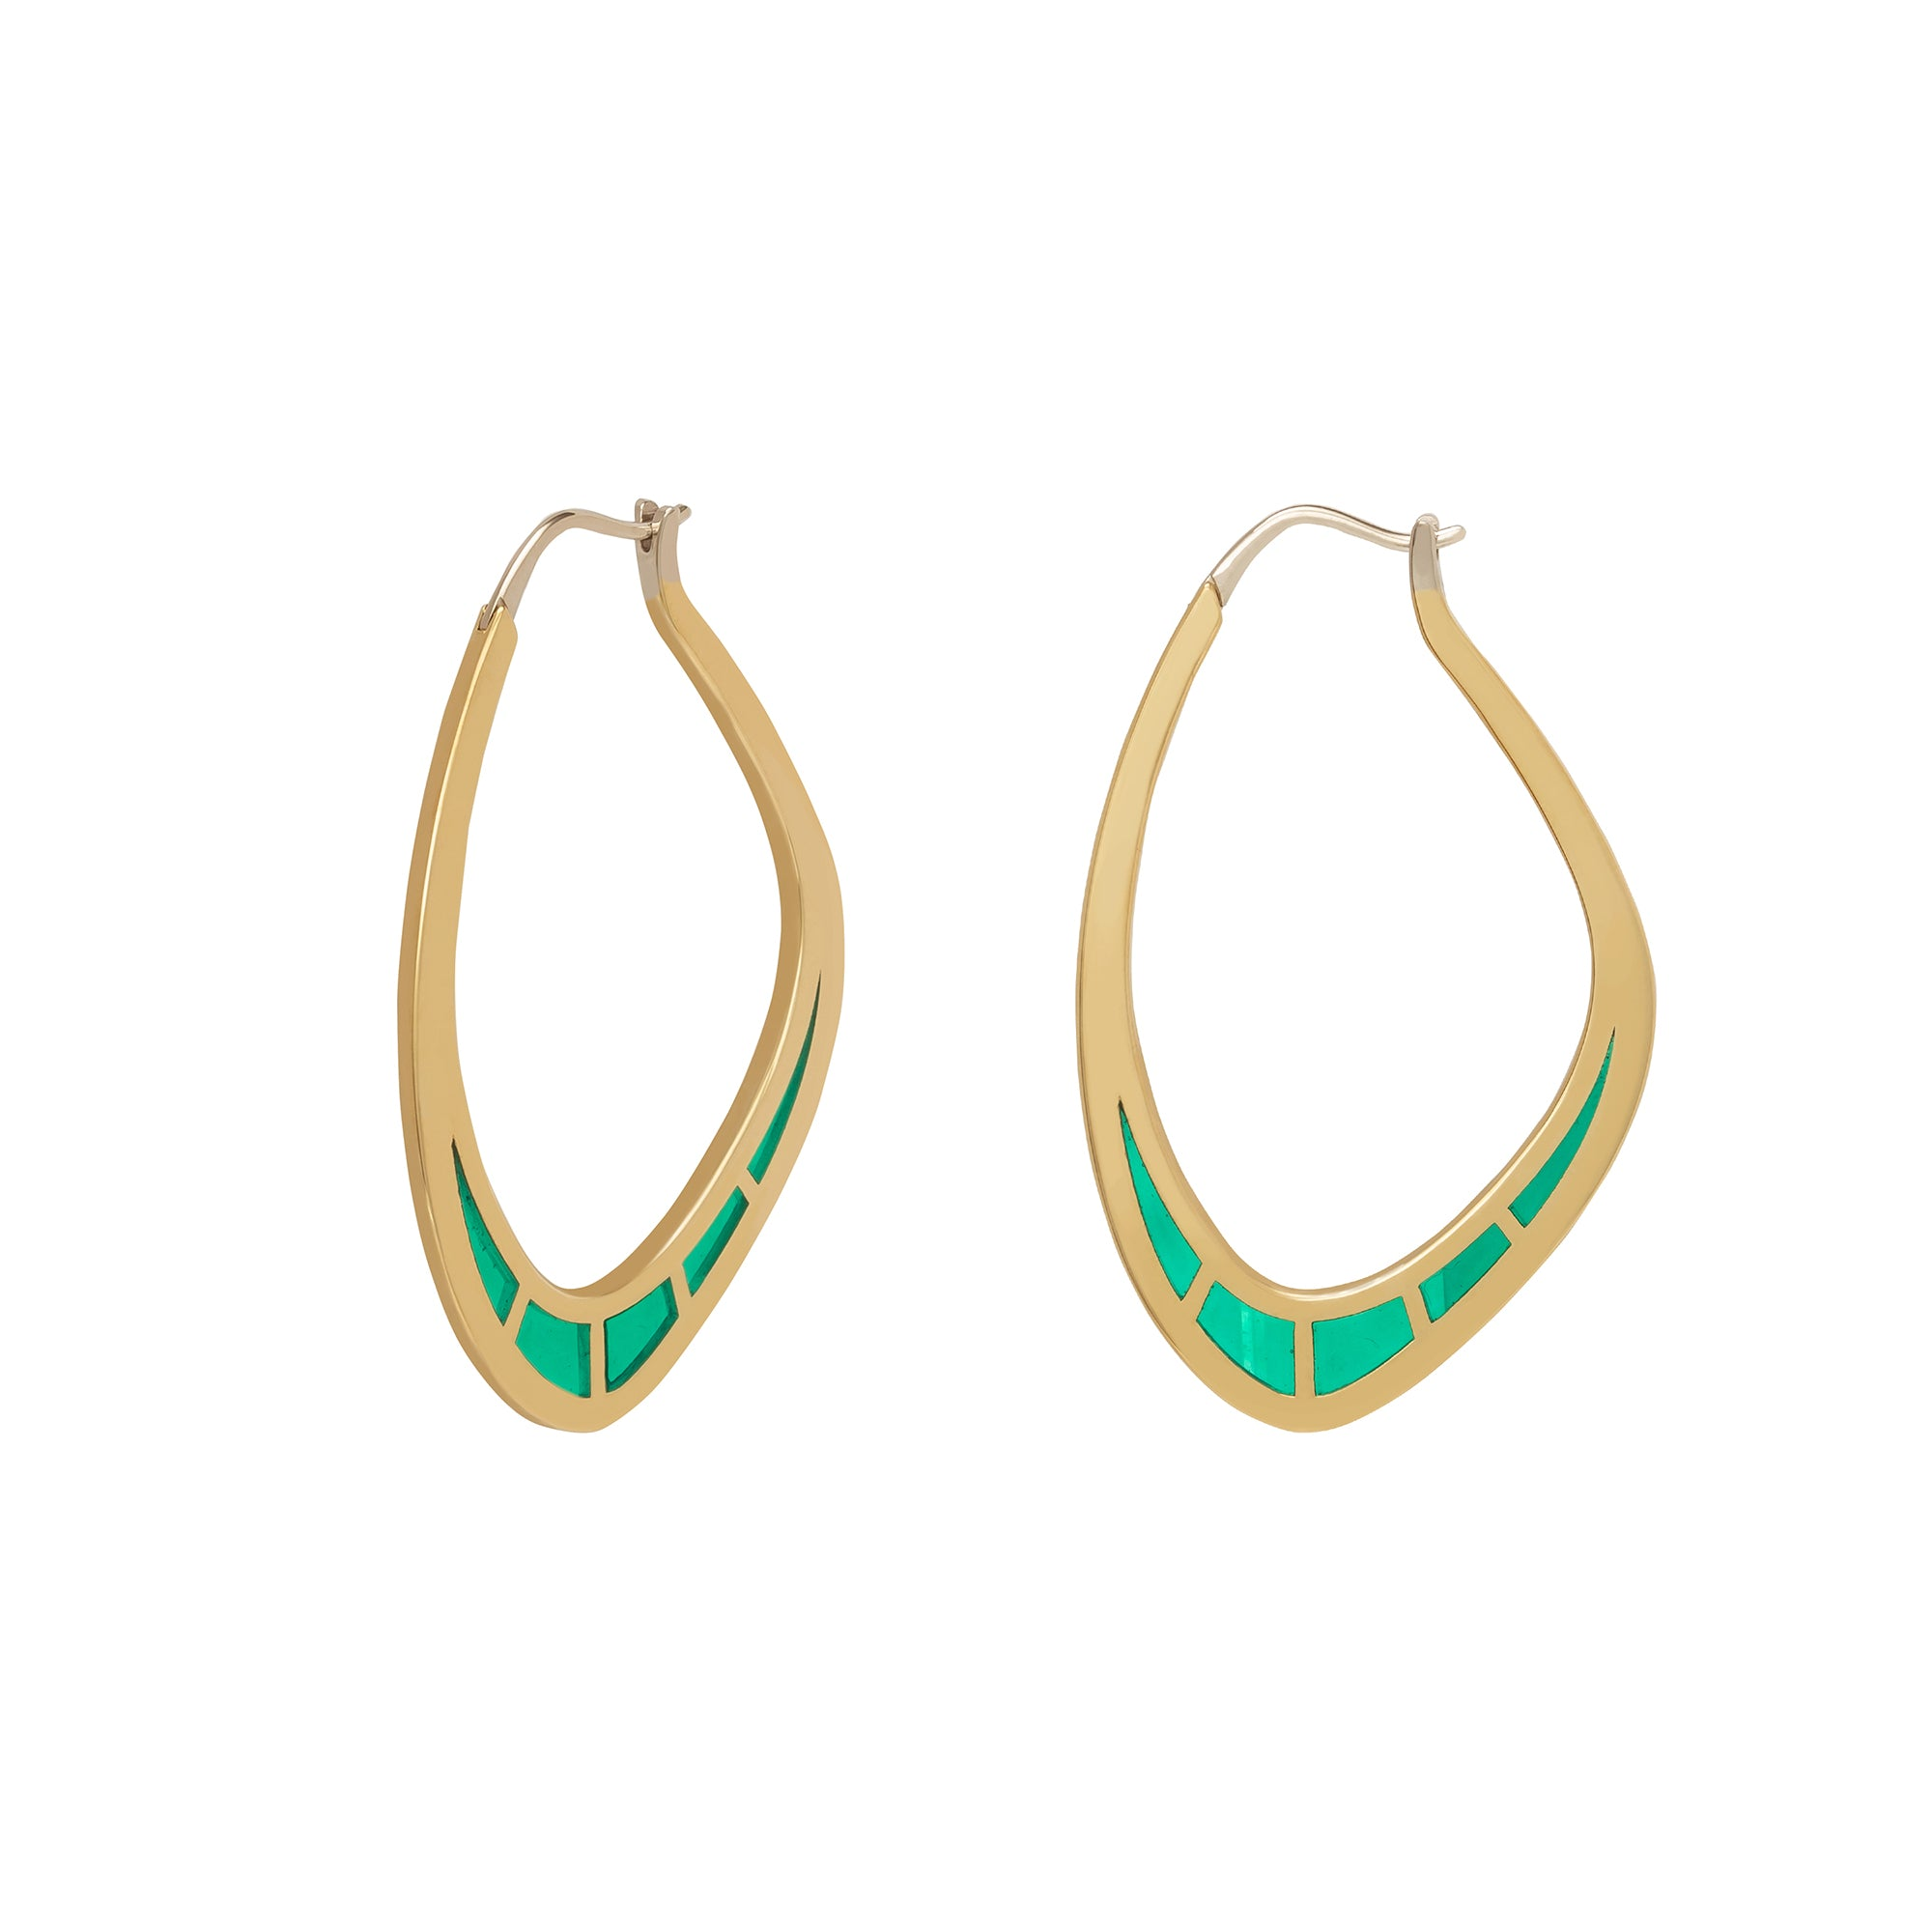 Cica Hoops with Green Enamel - ANDY LIF Jewelry - Earrings | Broken English Jewelry